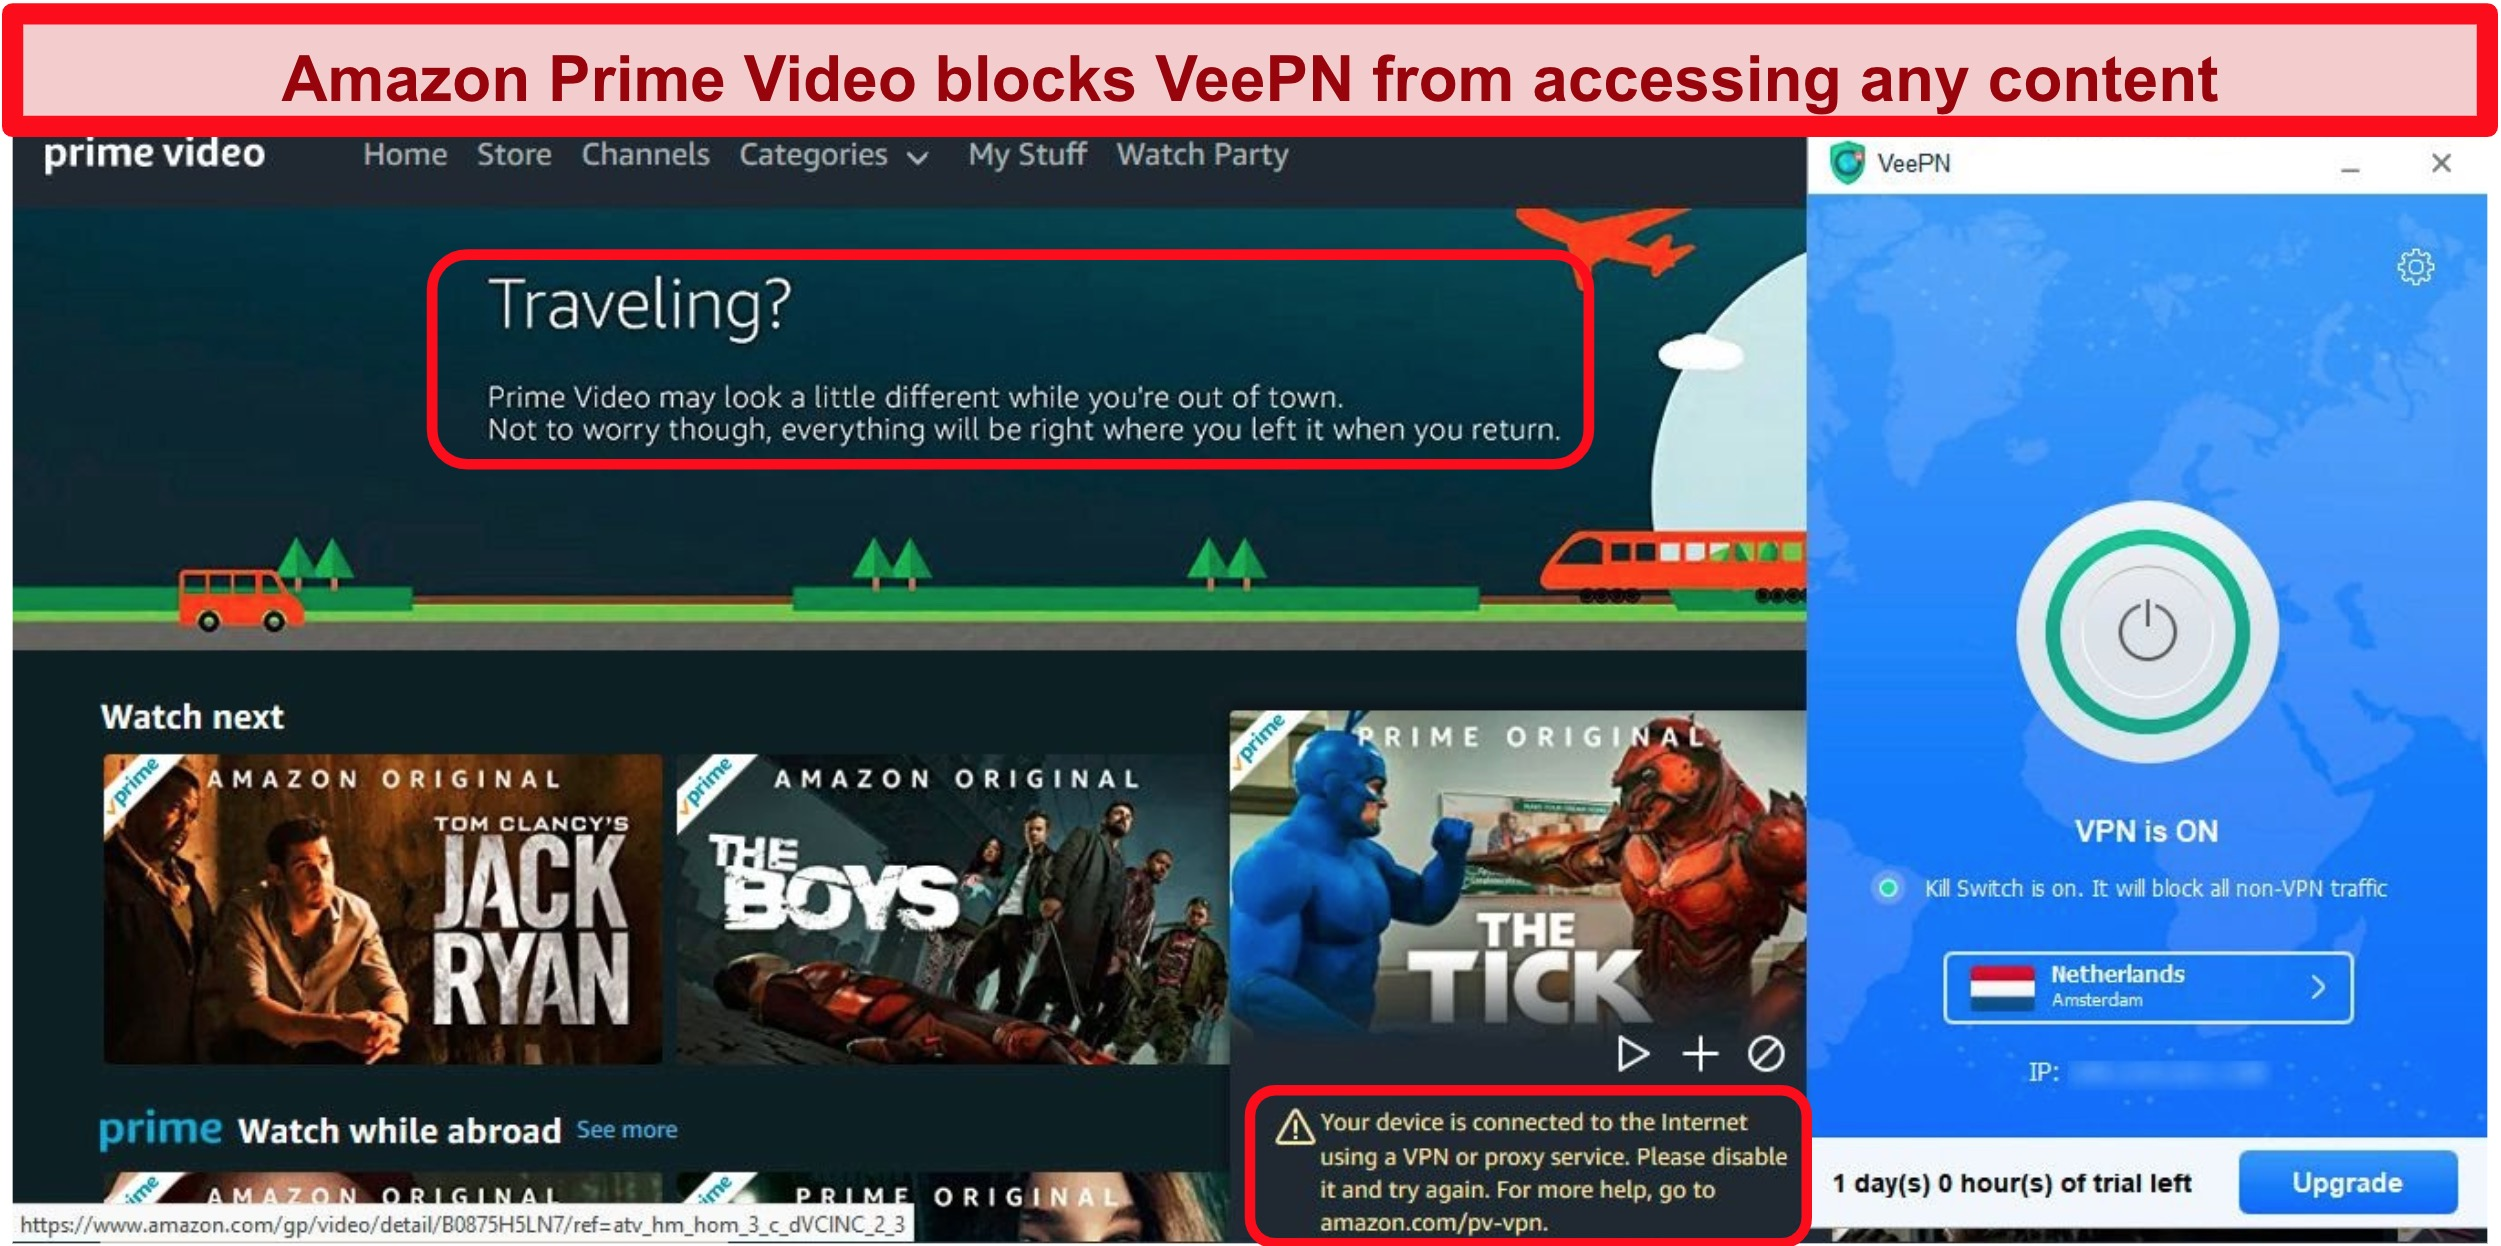 Screenshot of Amazon Prime Video's proxy IP error while connected to VeePN's server in the Netherlands